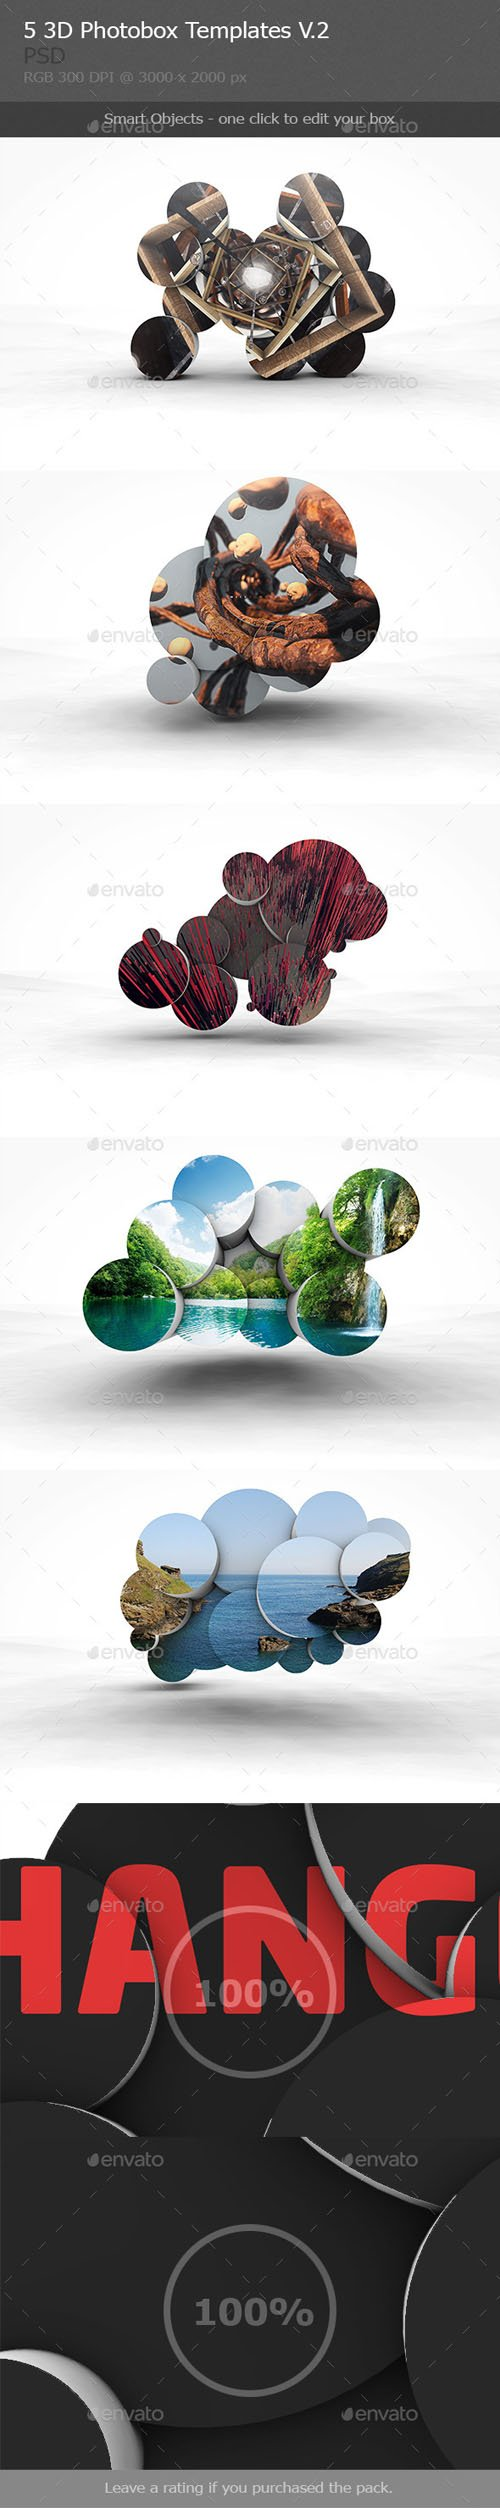 3D Photobox Template V.2 - Graphicriver 10034426